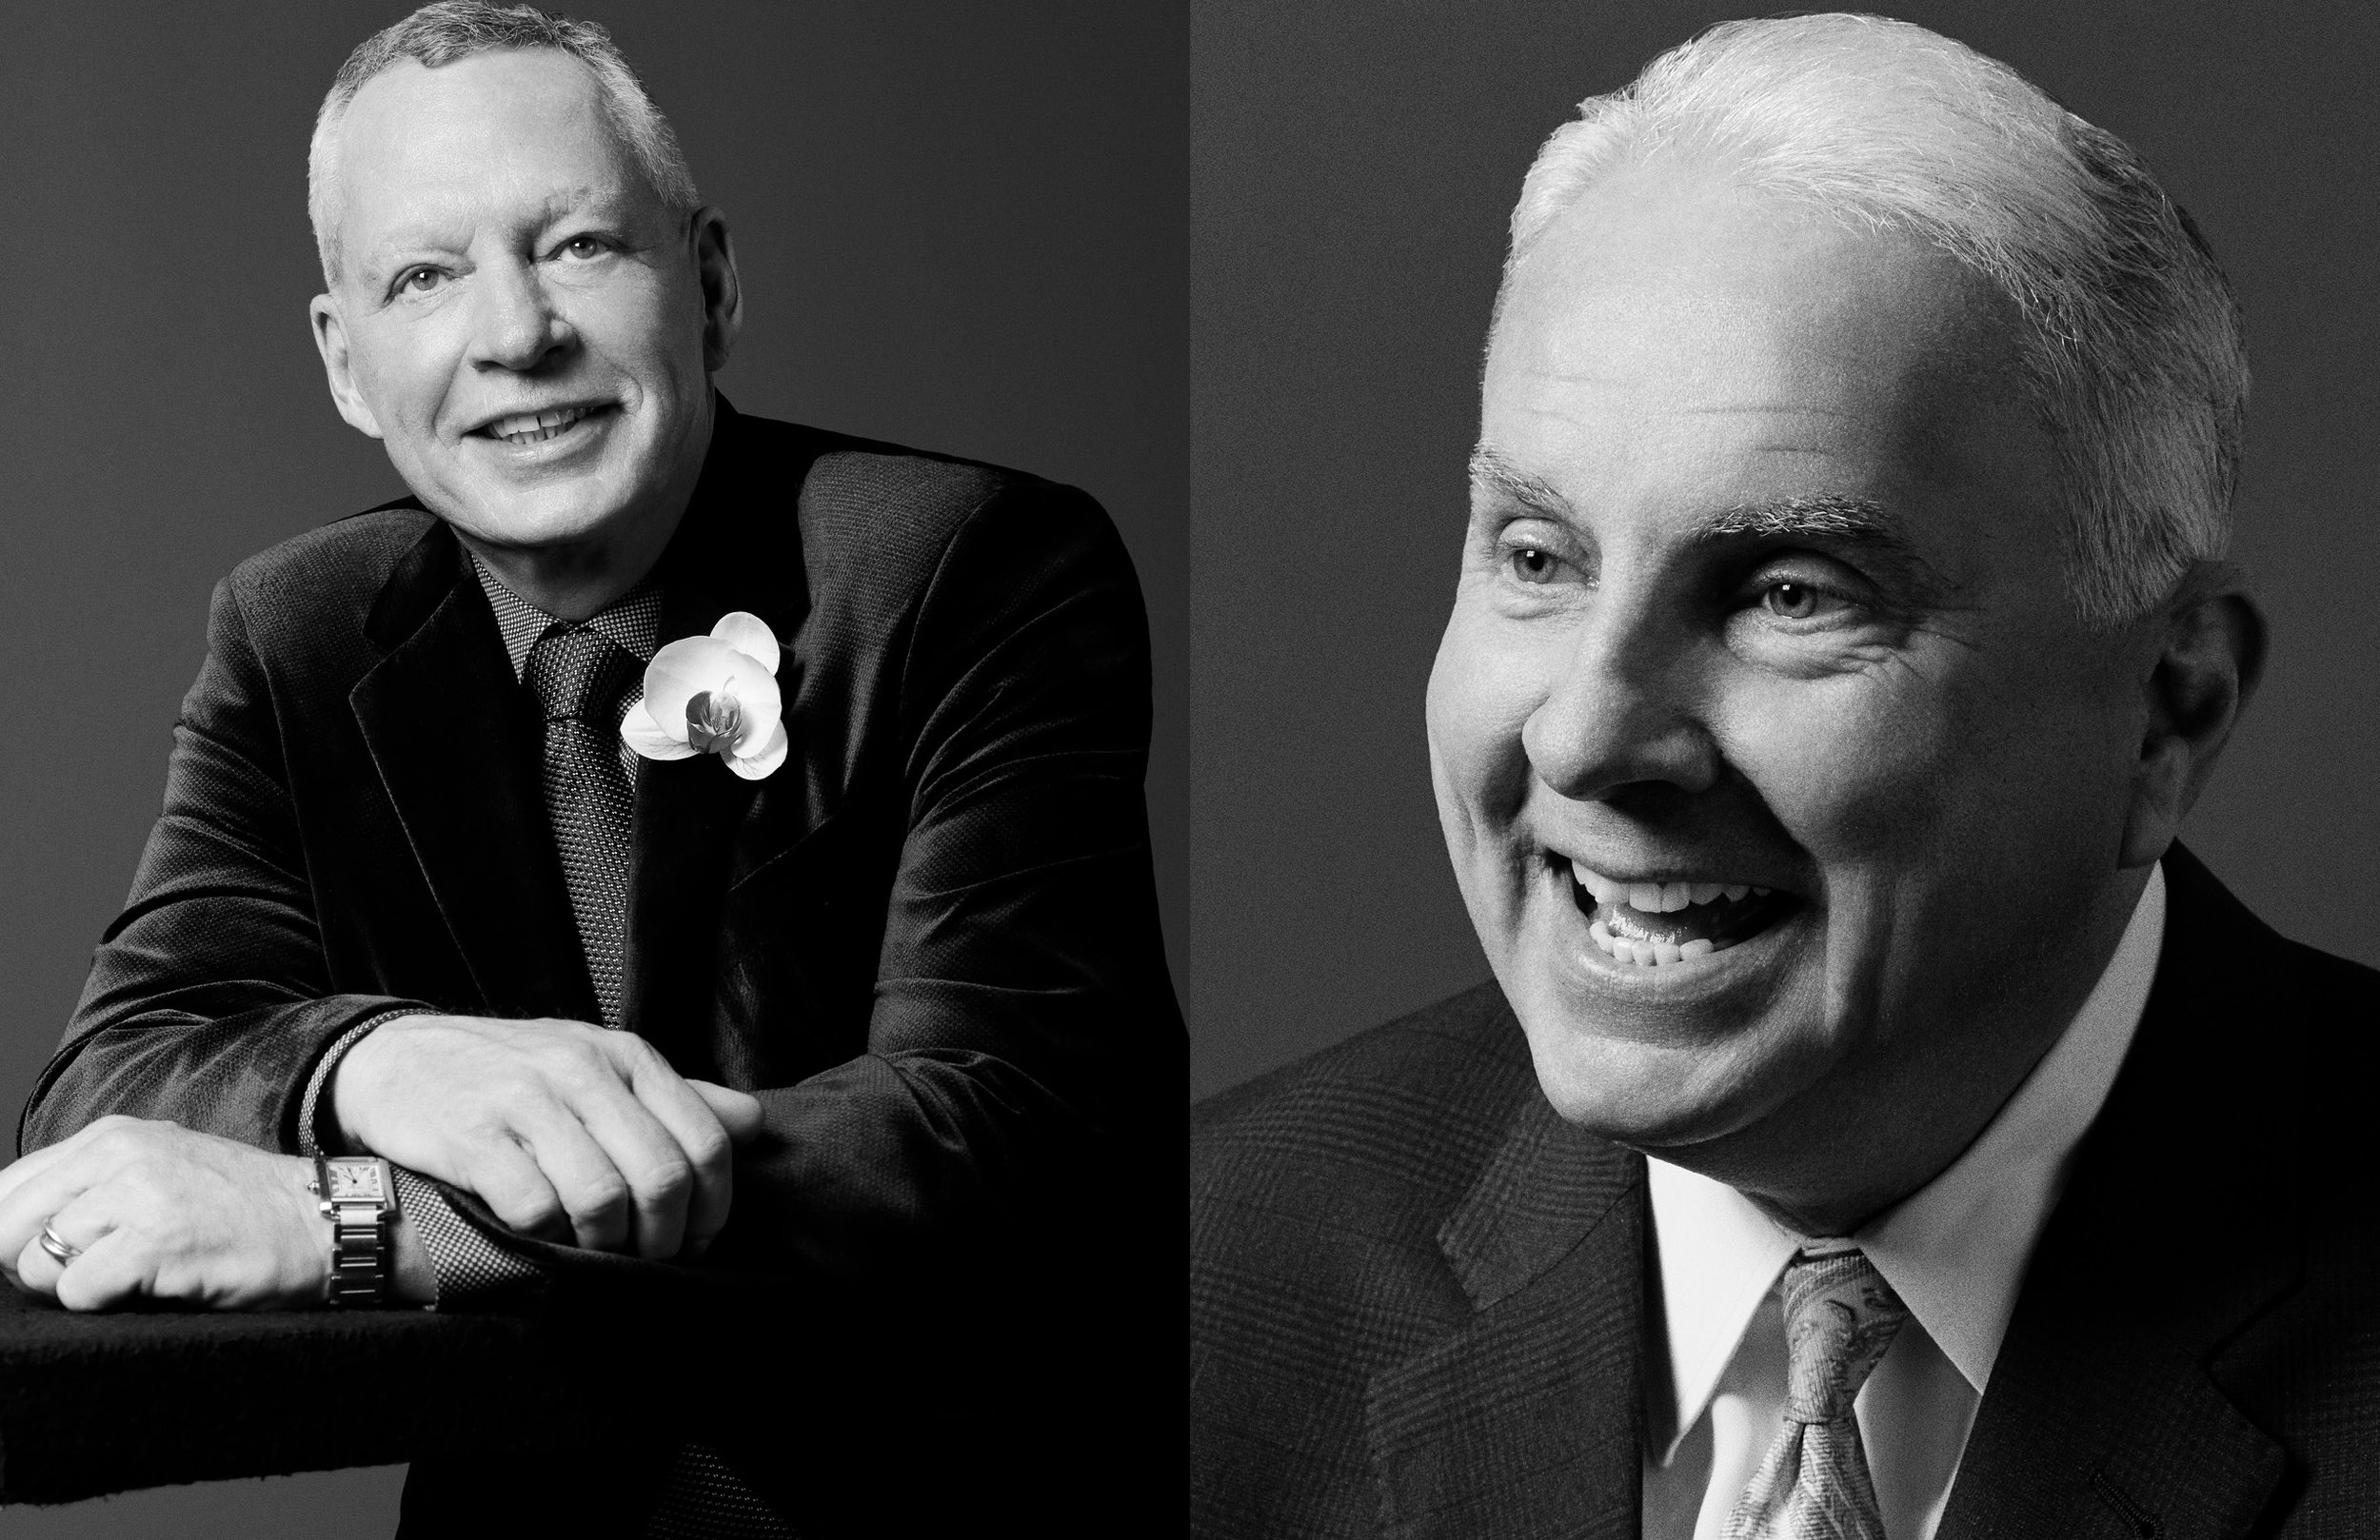 RICHARD FLOWERS, CEO OF THE EVENTS COMPANY & MARK A. WALLACE, CEO OF TEXAS CHILDREN'S HOSPITAL